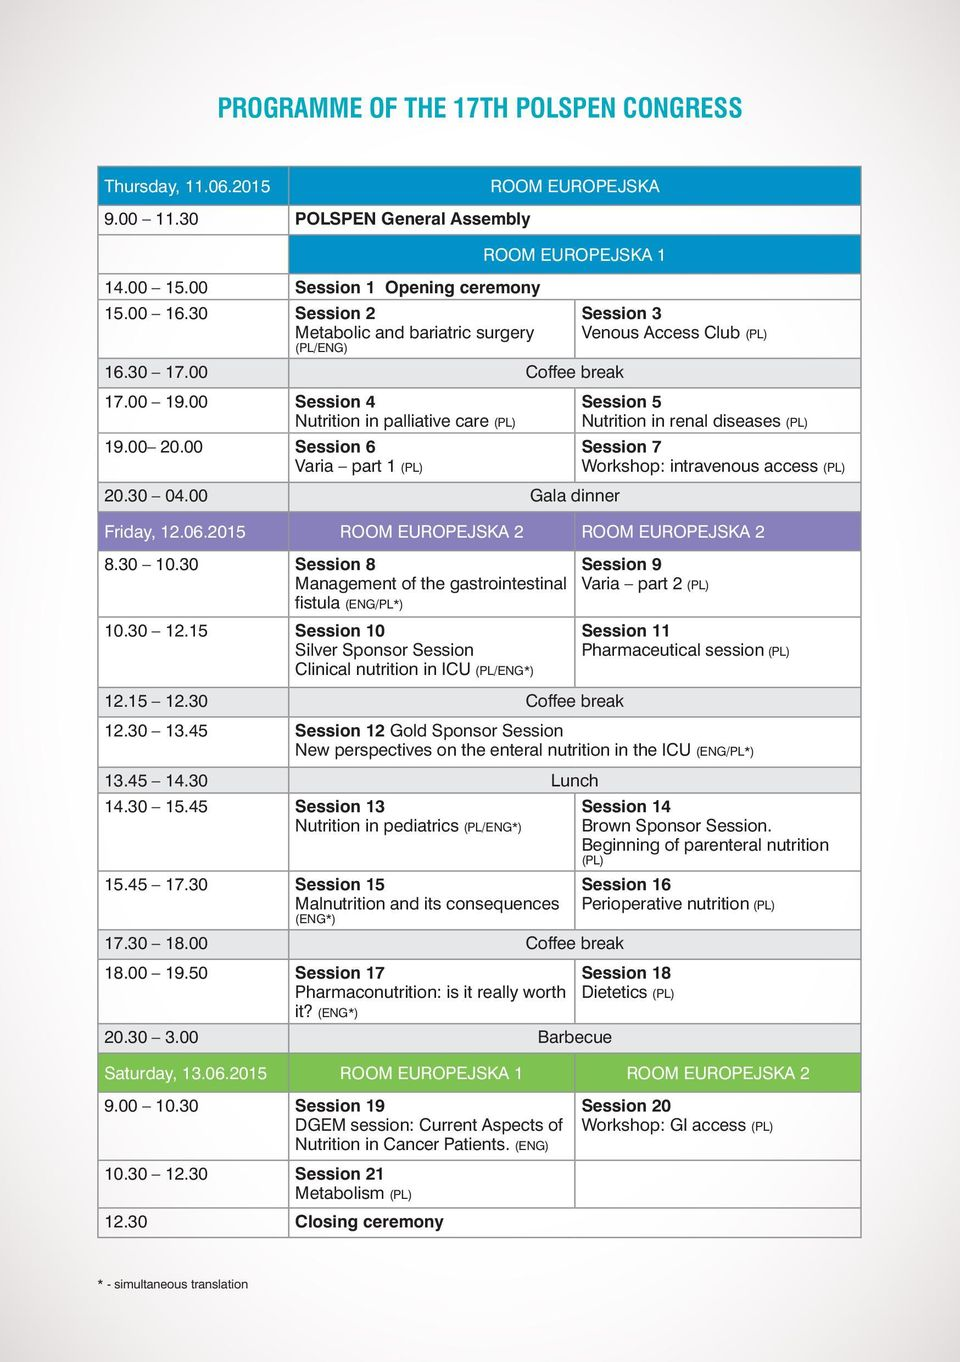 30 04.00 Gala dinner Session 3 Venous Access Club (PL) Session 5 Nutrition in renal diseases (PL) Session 7 Workshop: intravenous access (PL) Friday, 12.06.2015 ROOM EUROPEJSKA 2 ROOM EUROPEJSKA 2 8.